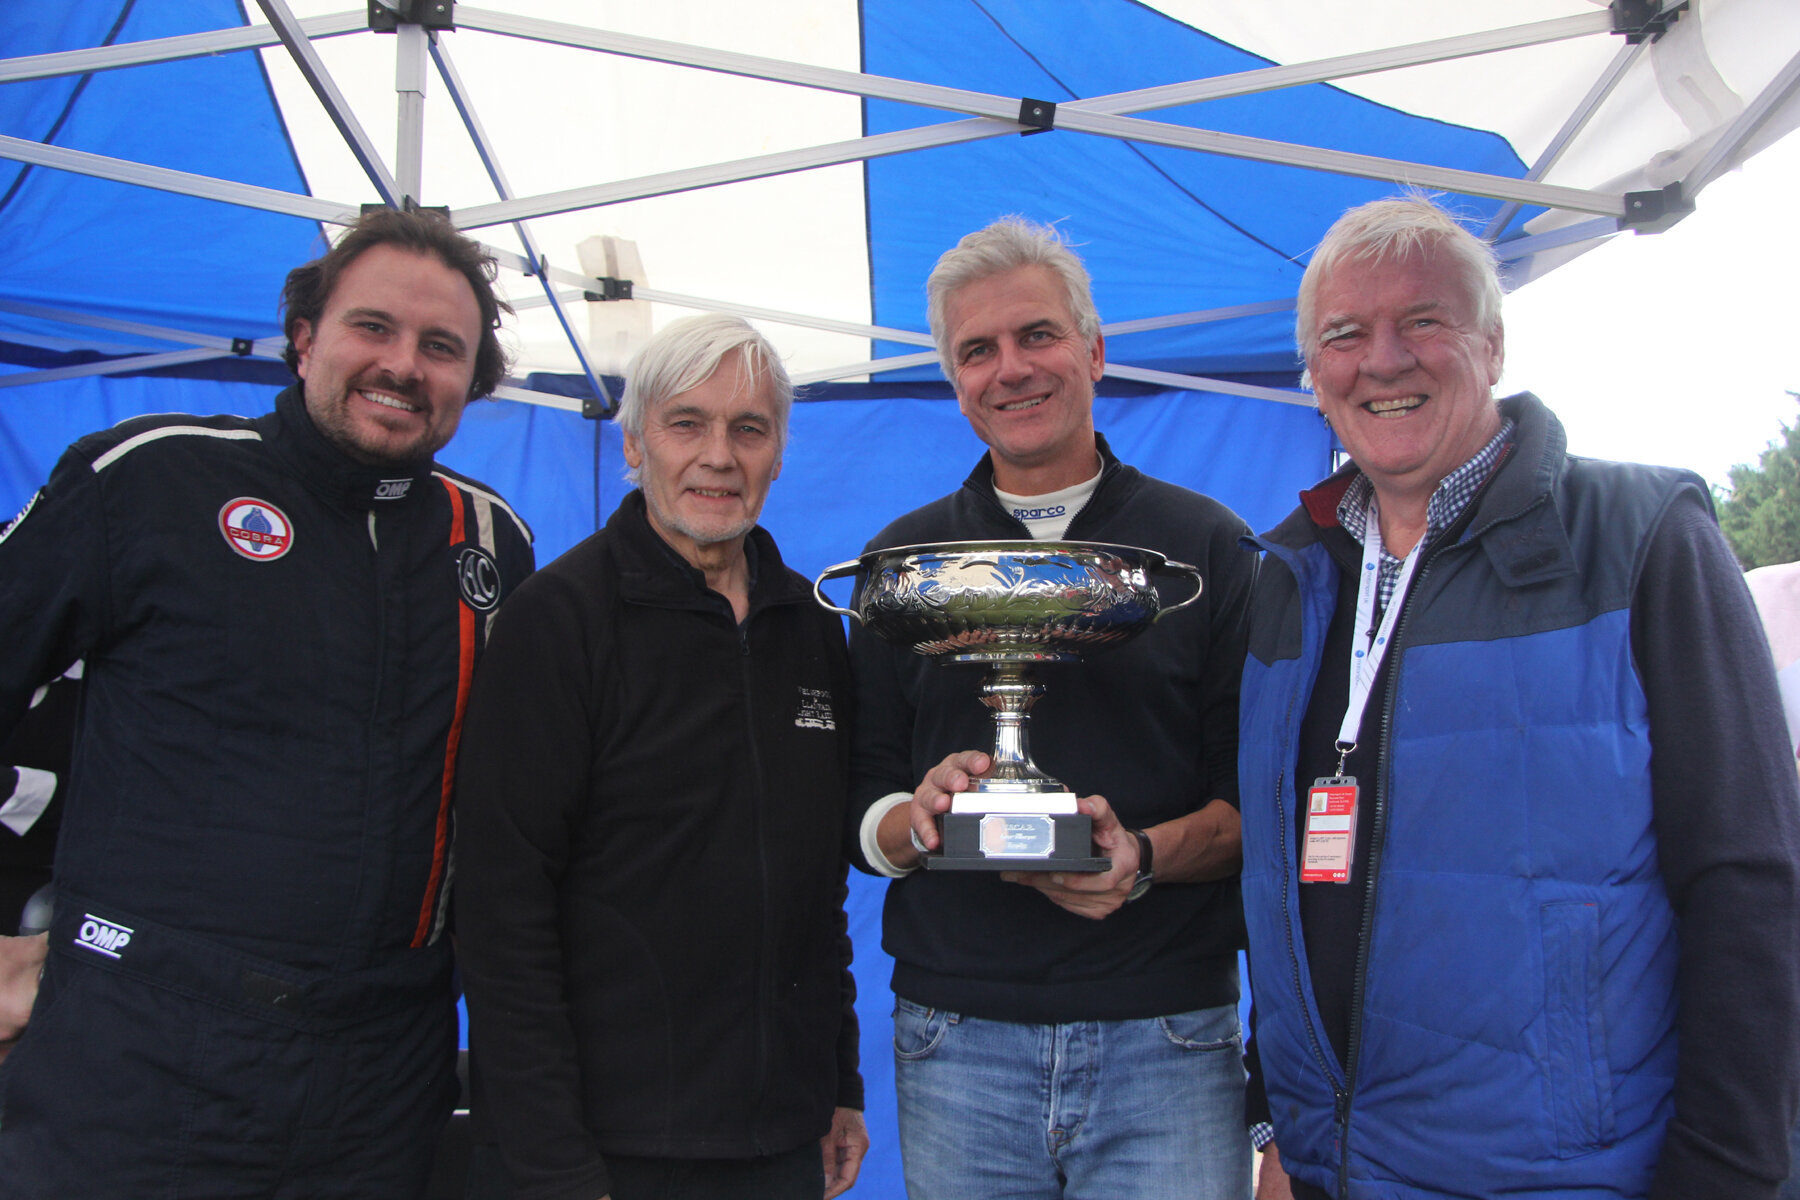 Well done to the AC Aces team who retained the Inter-Marque Team Trophy this year. L to R Ted Shepherd, Justin Becket and Tim Pearce.